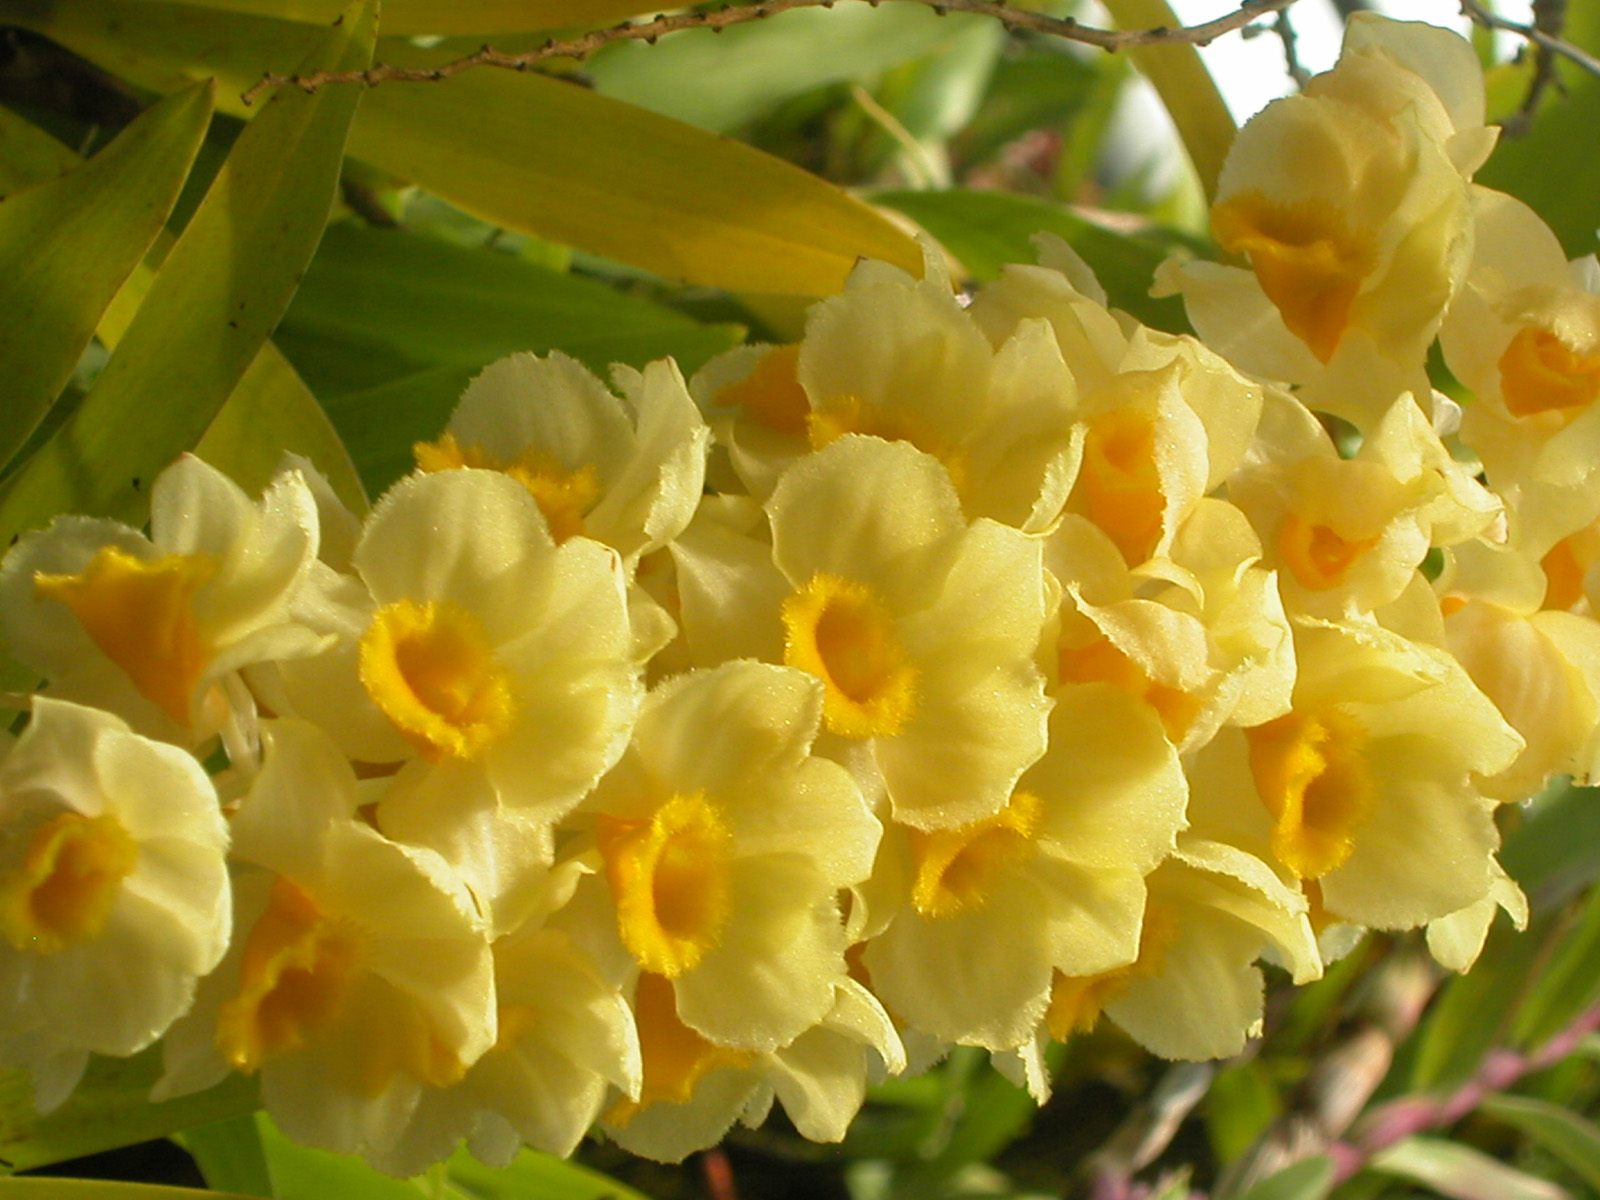 Yellow flowers images 6 free hd wallpaper hdflowerwallpaper yellow flowers images hd wallpaper mightylinksfo